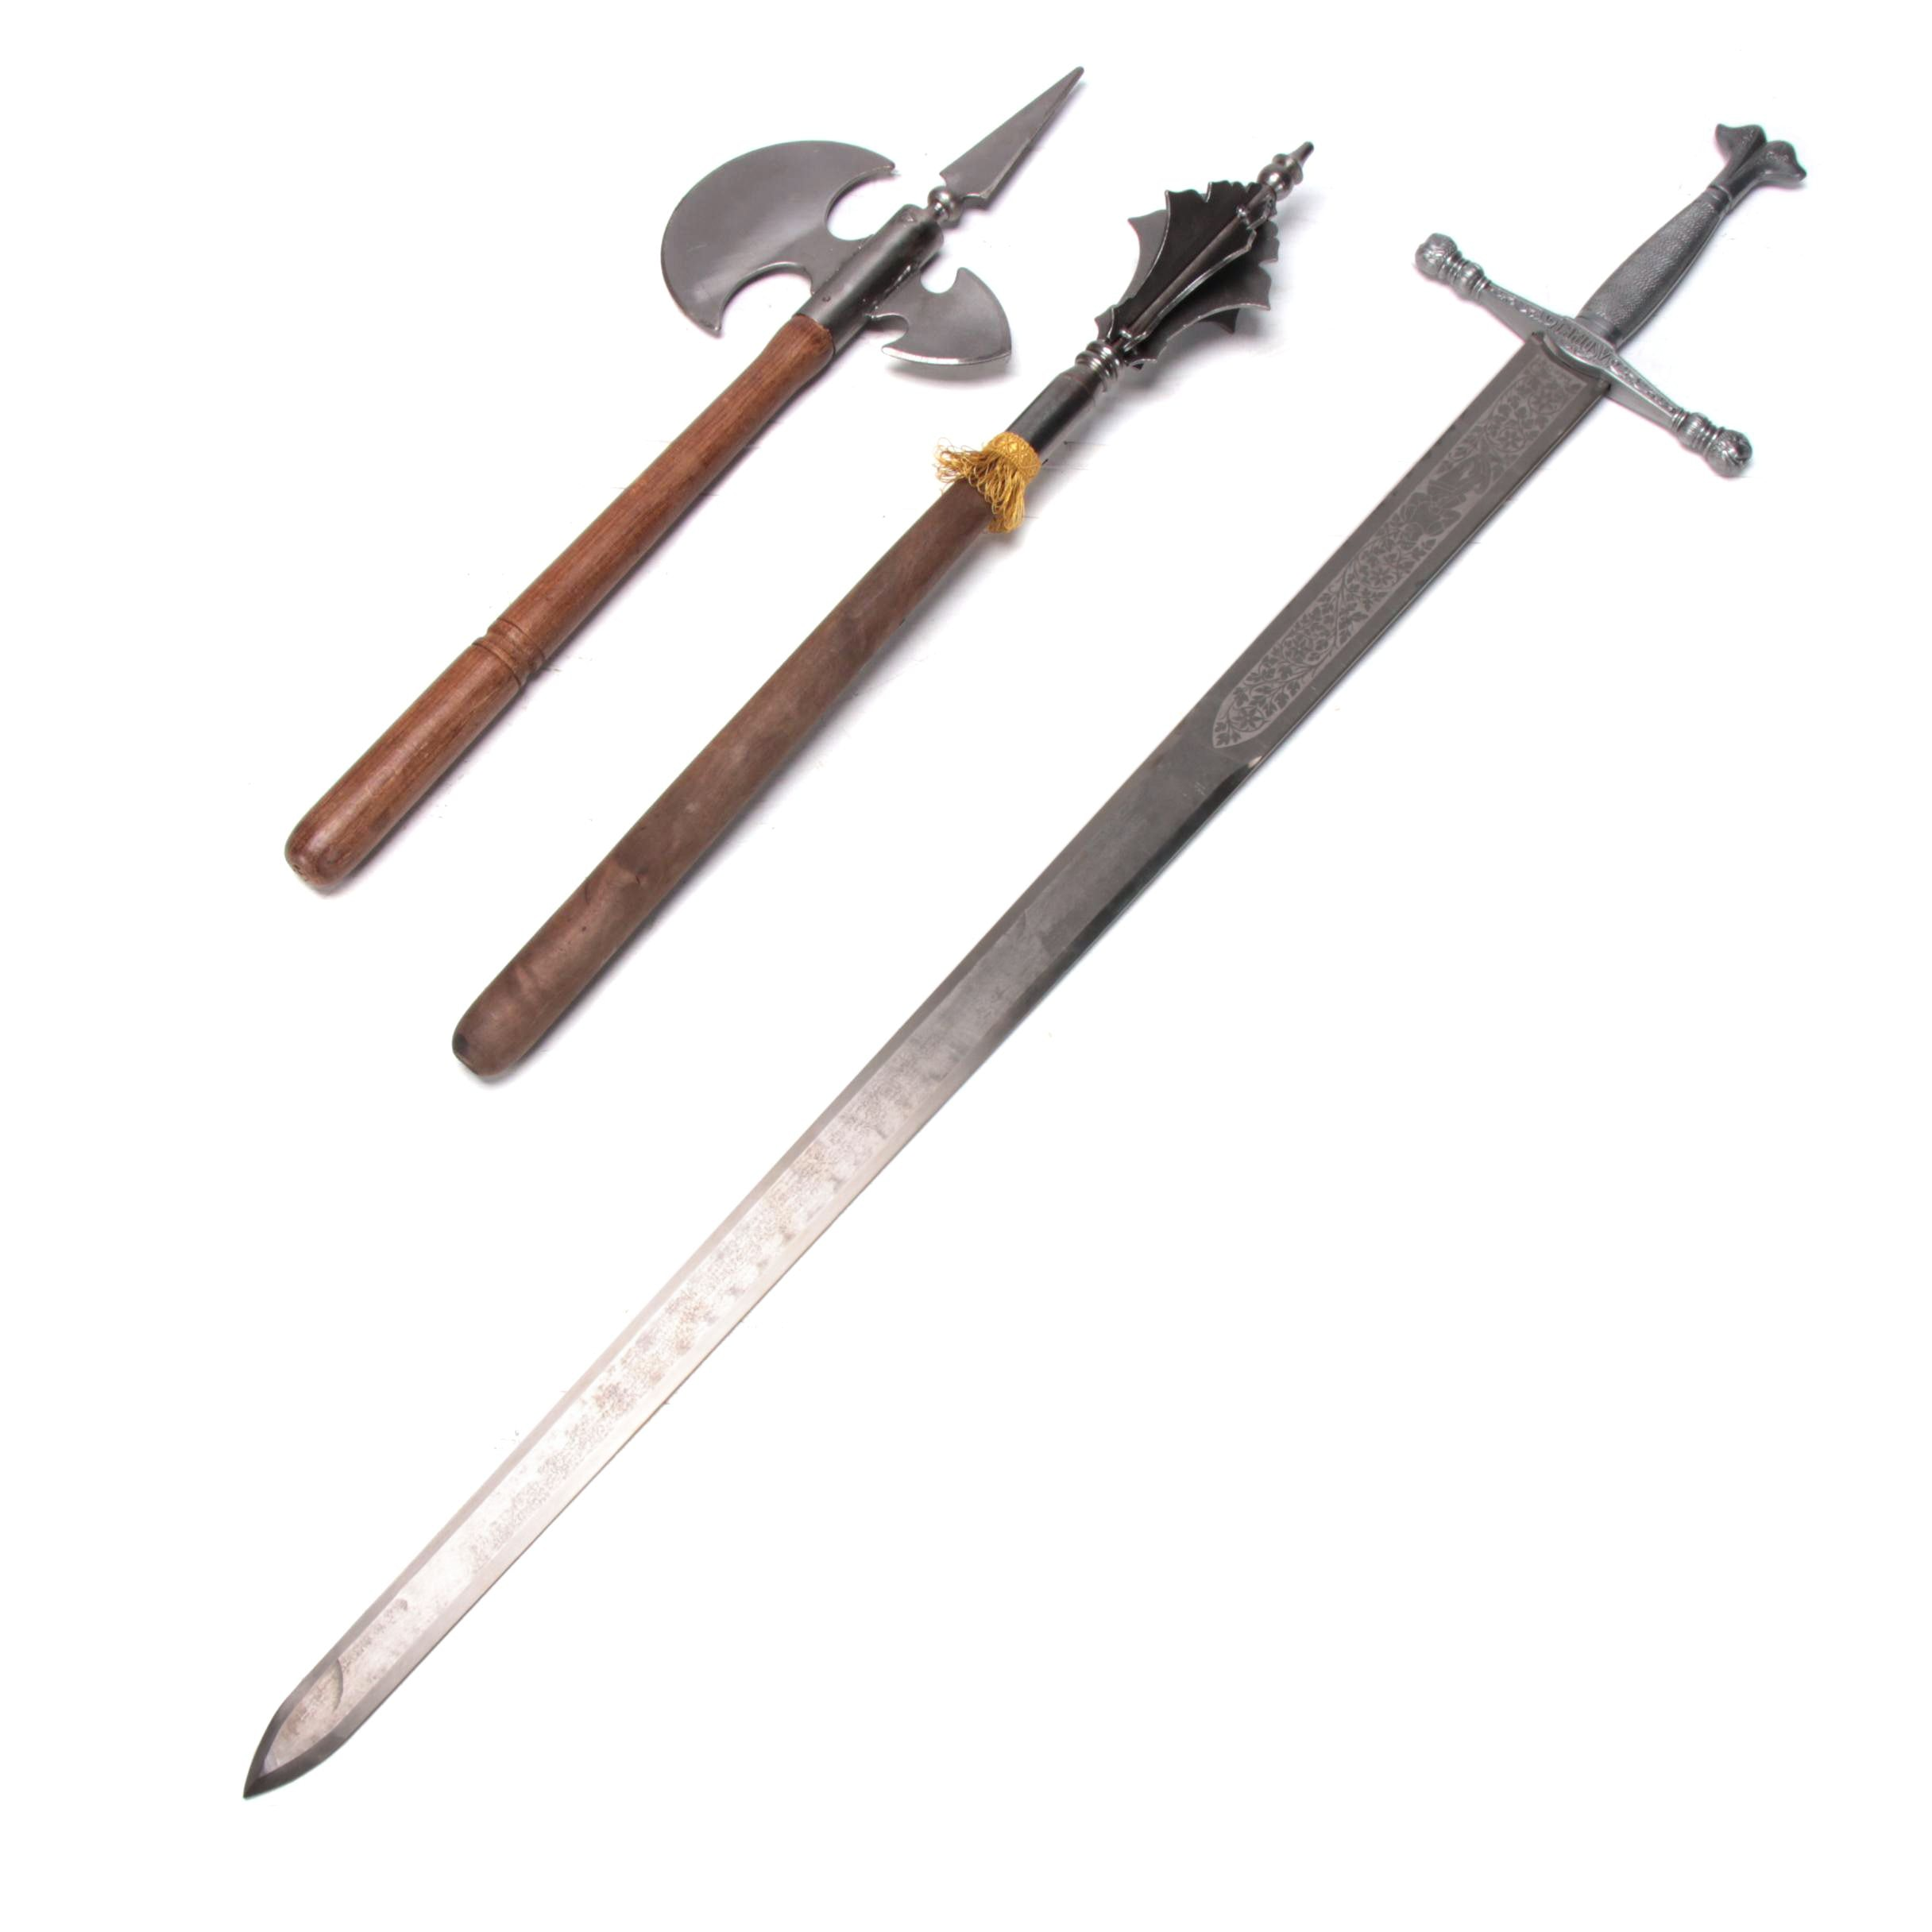 Replica Charles V Toledo Steel Sword and Medieval Style Axe and Flanged Mace